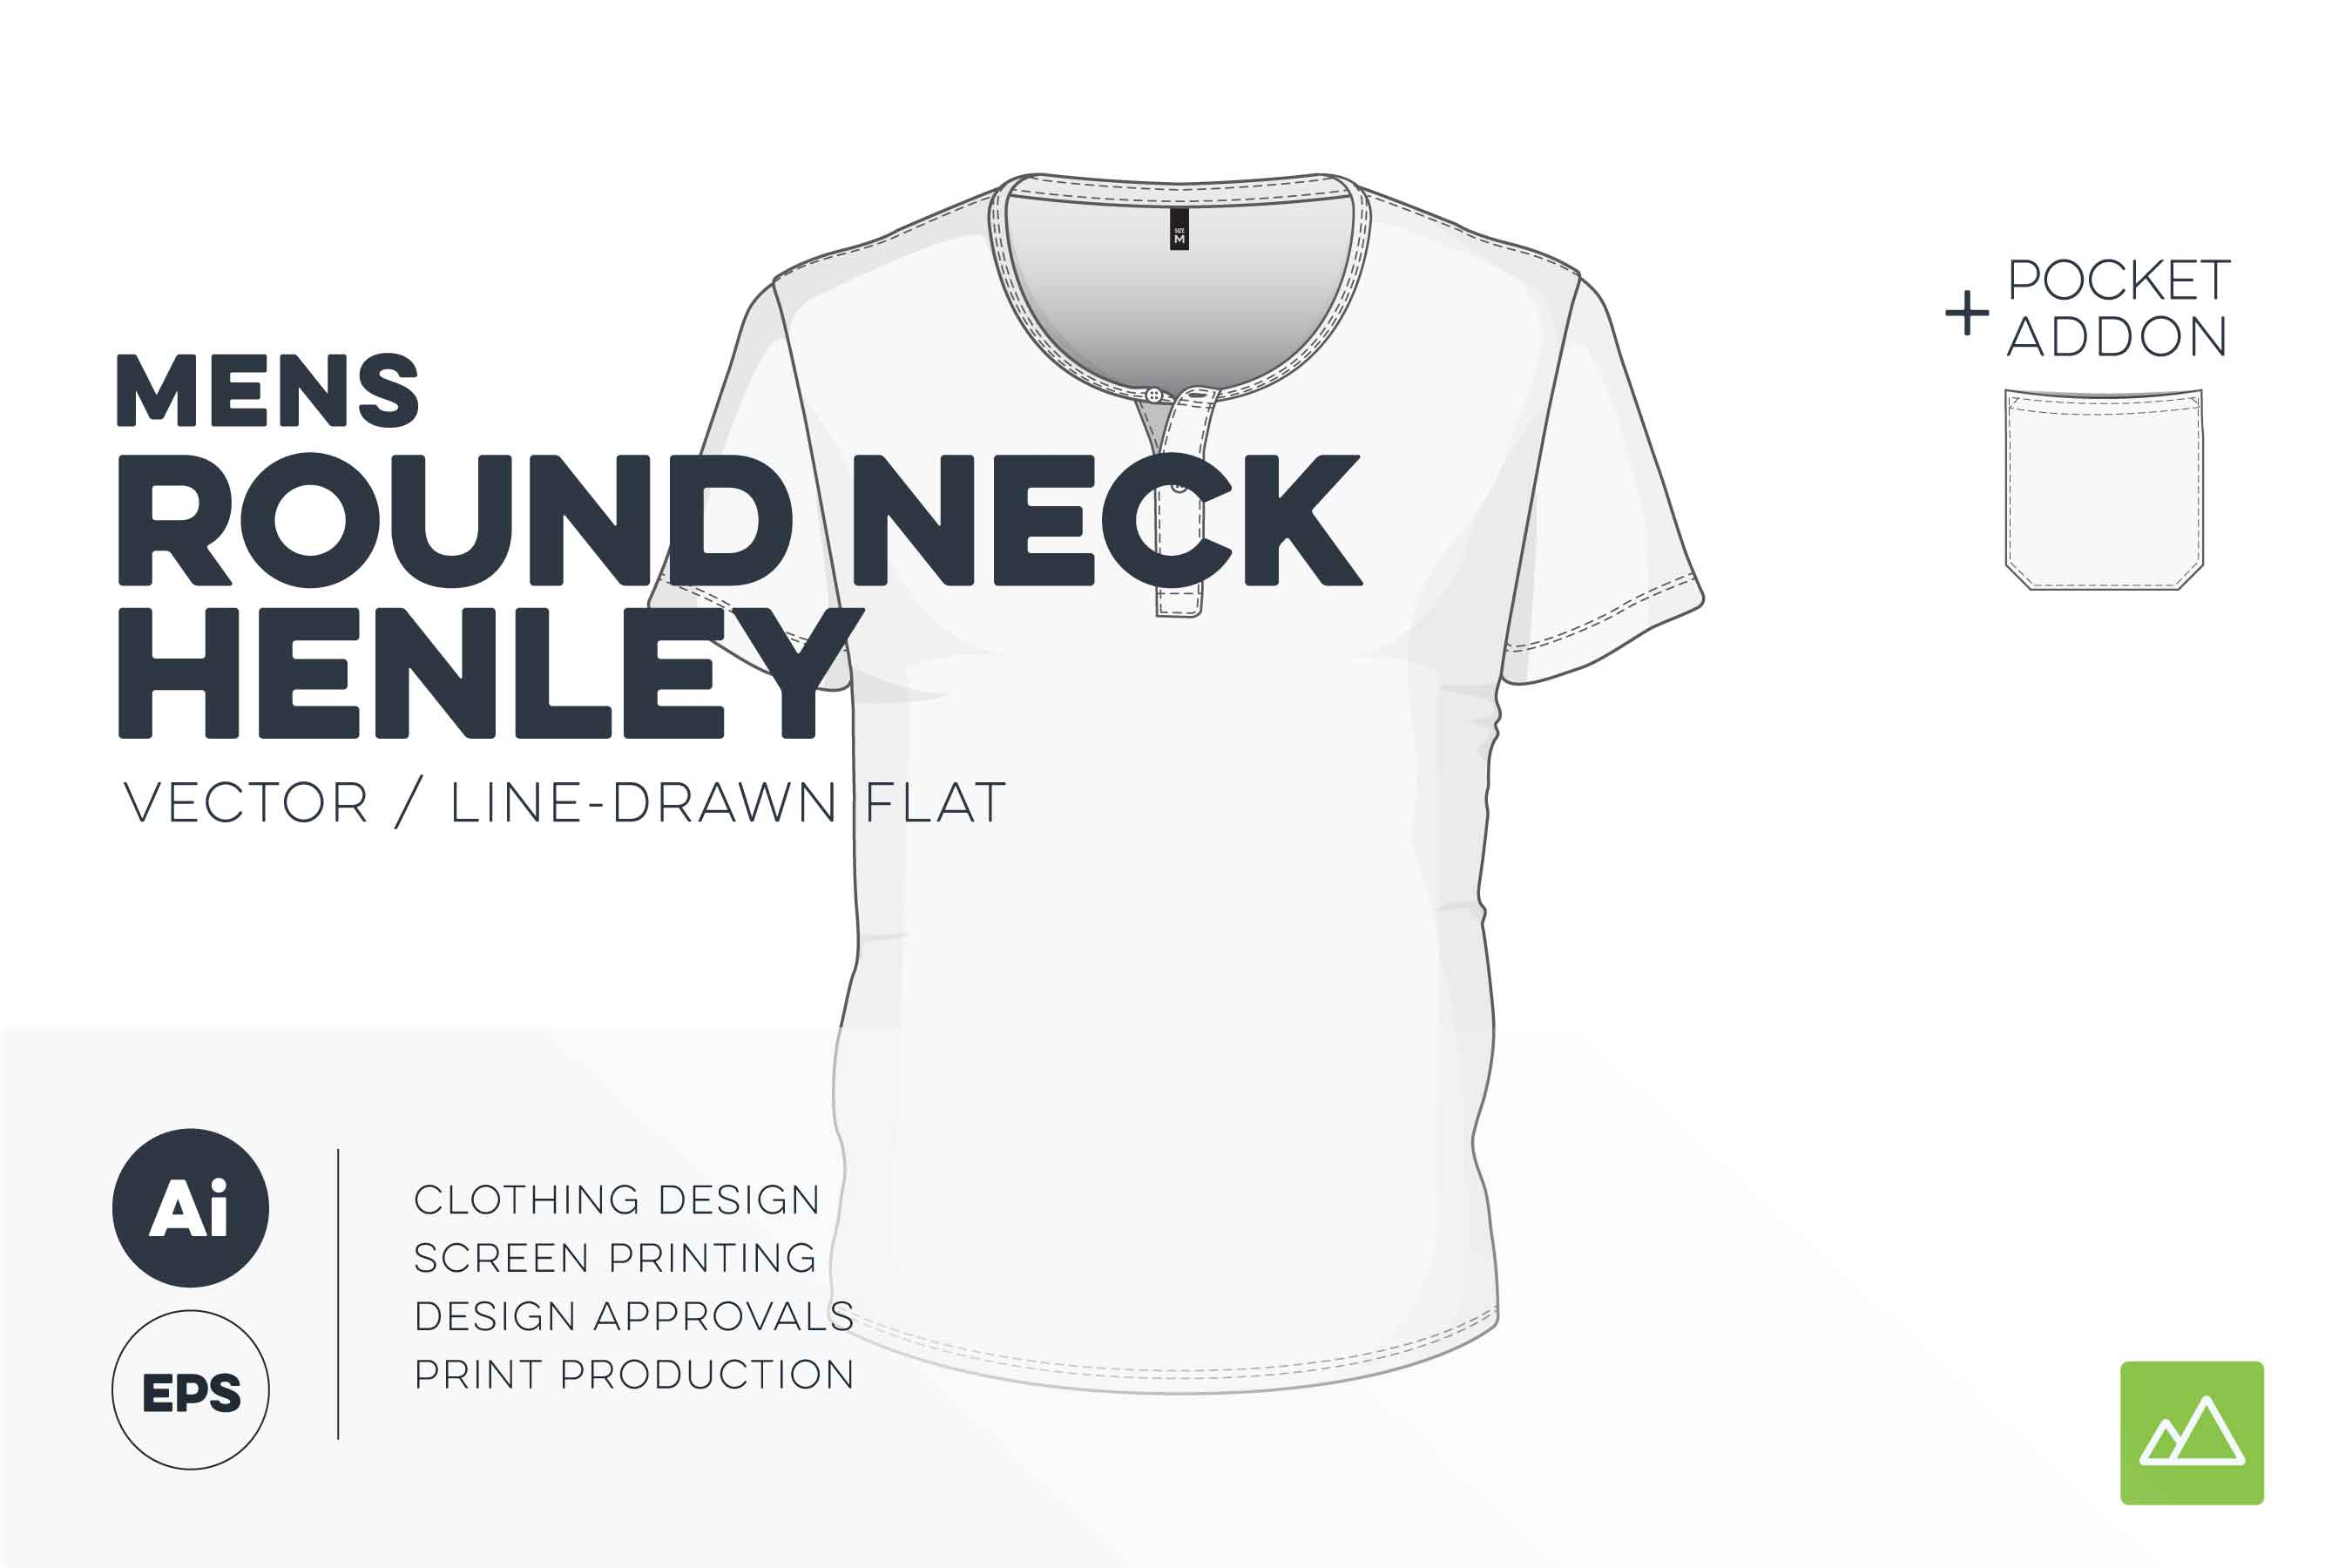 Mens round neck henley t-shirt template vector pack